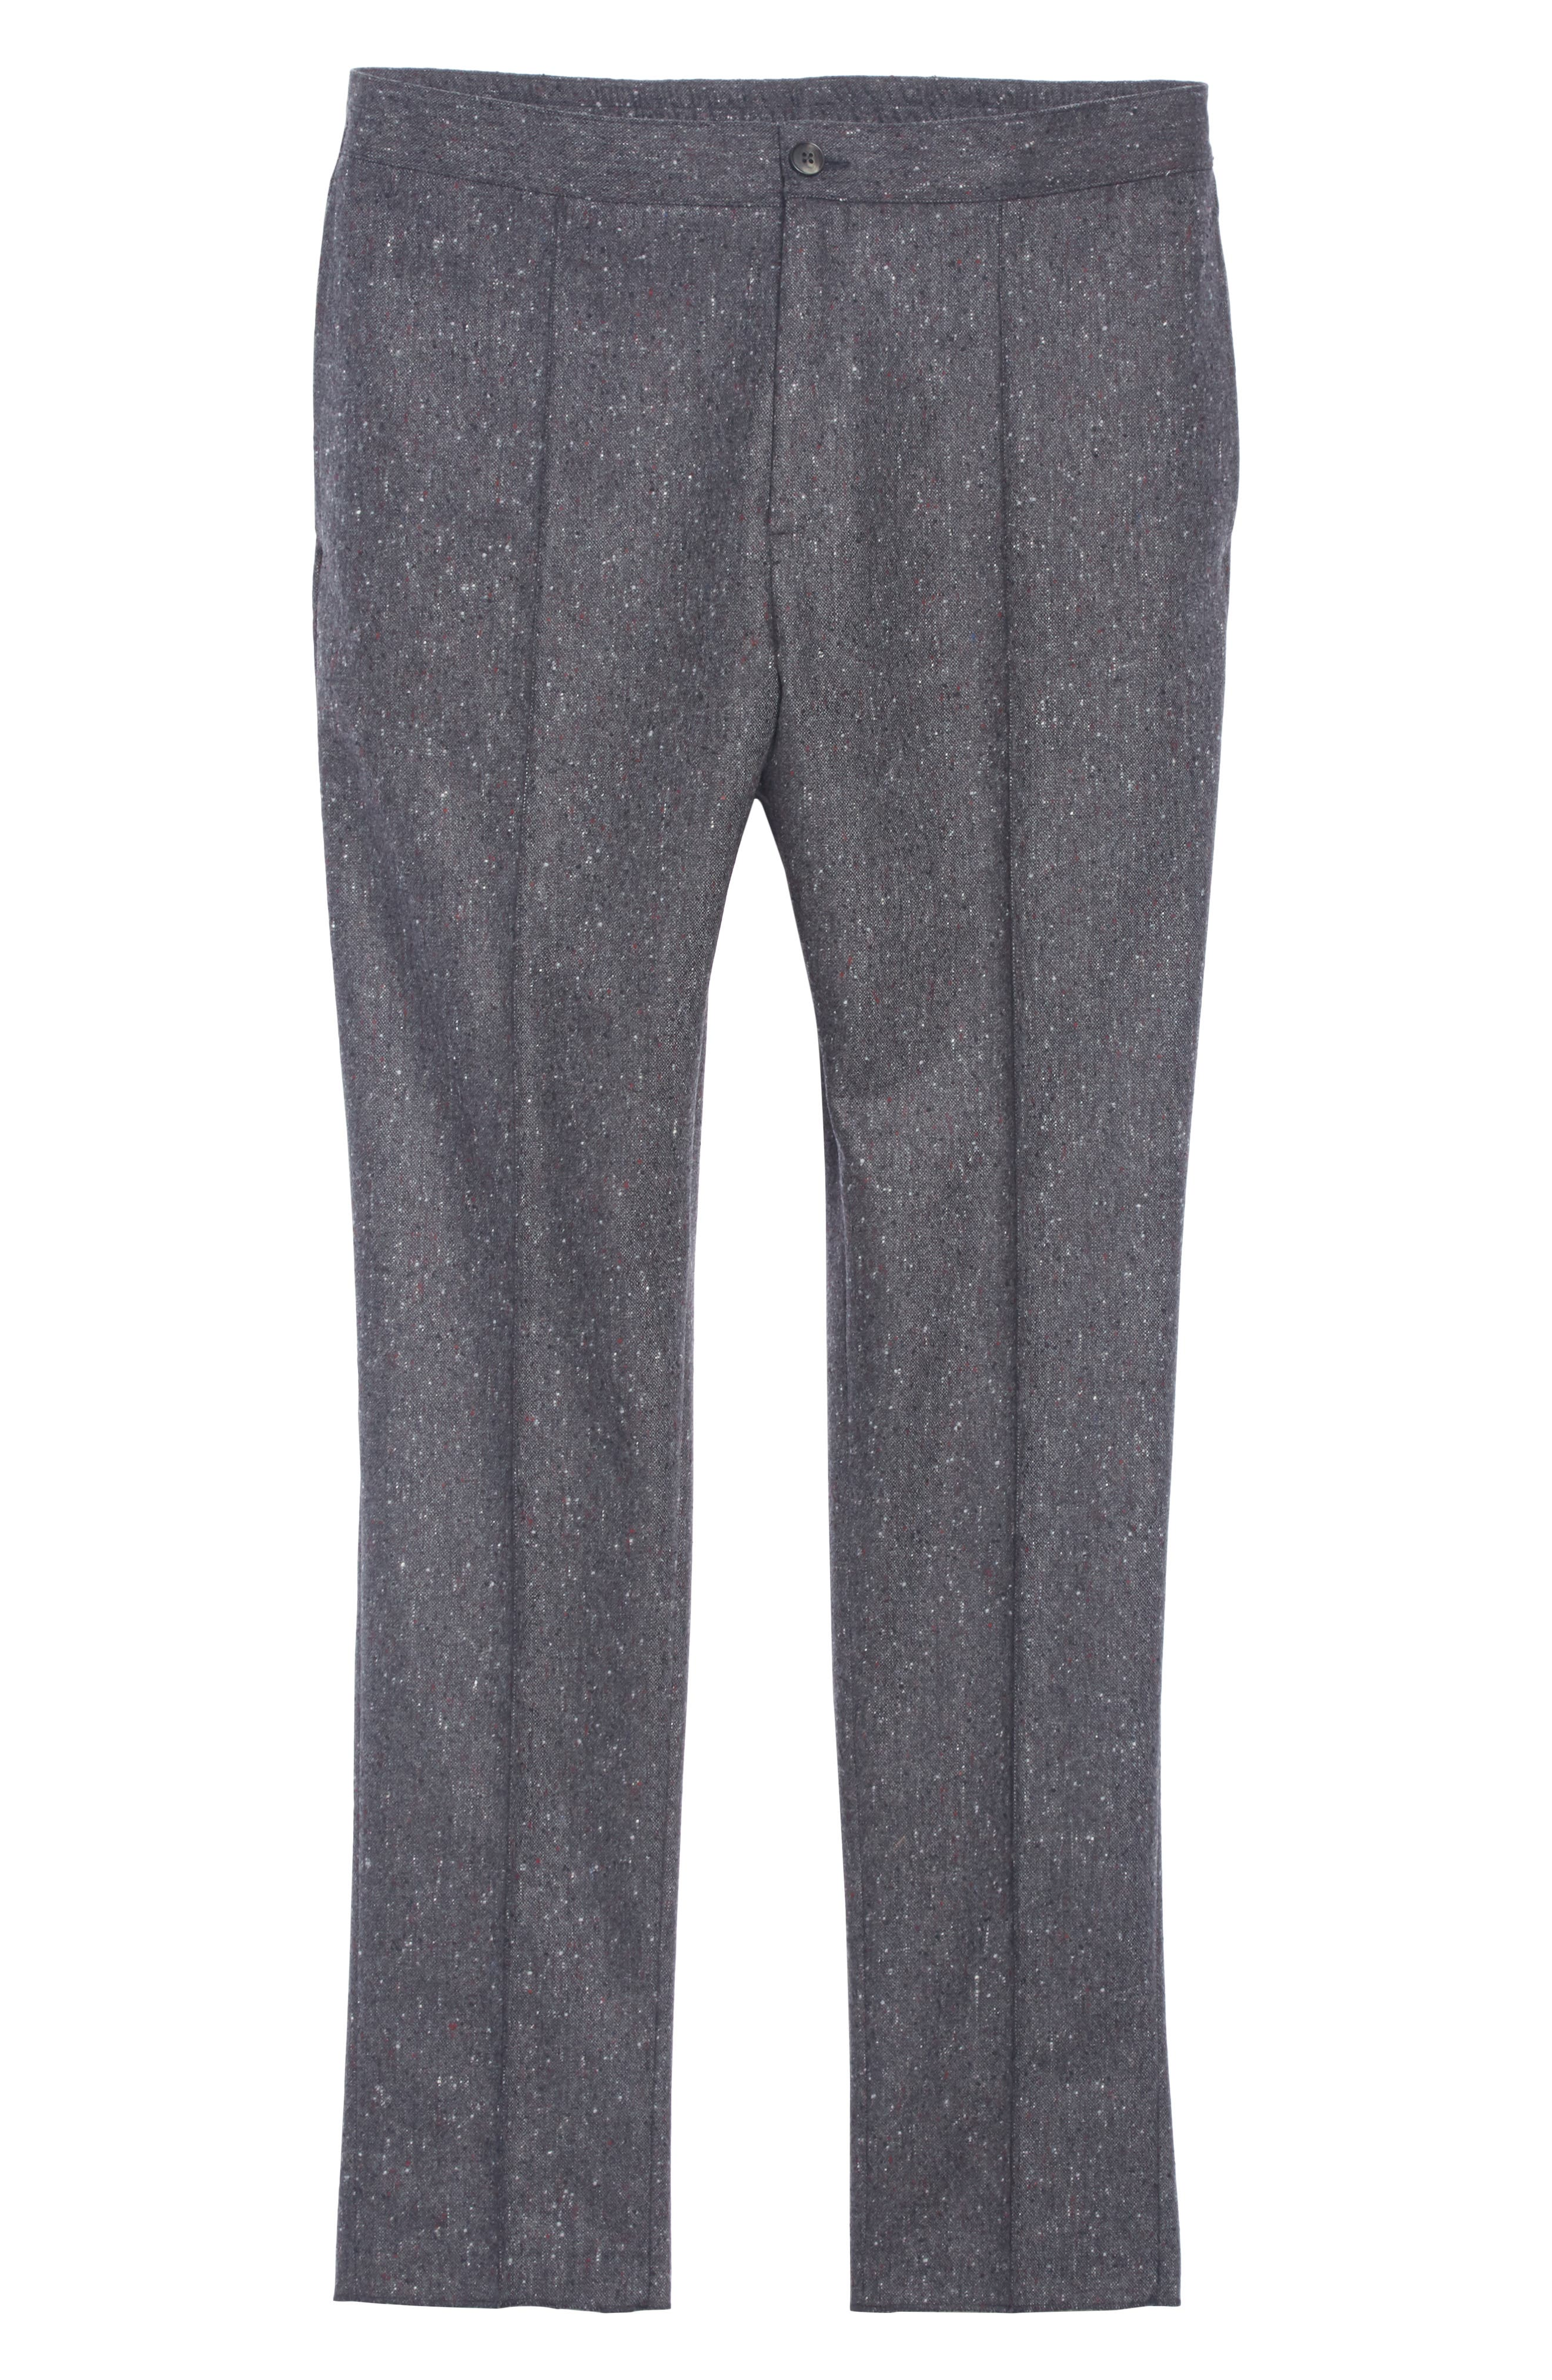 Flat Front Solid Wool Trousers,                             Alternate thumbnail 6, color,                             GREY